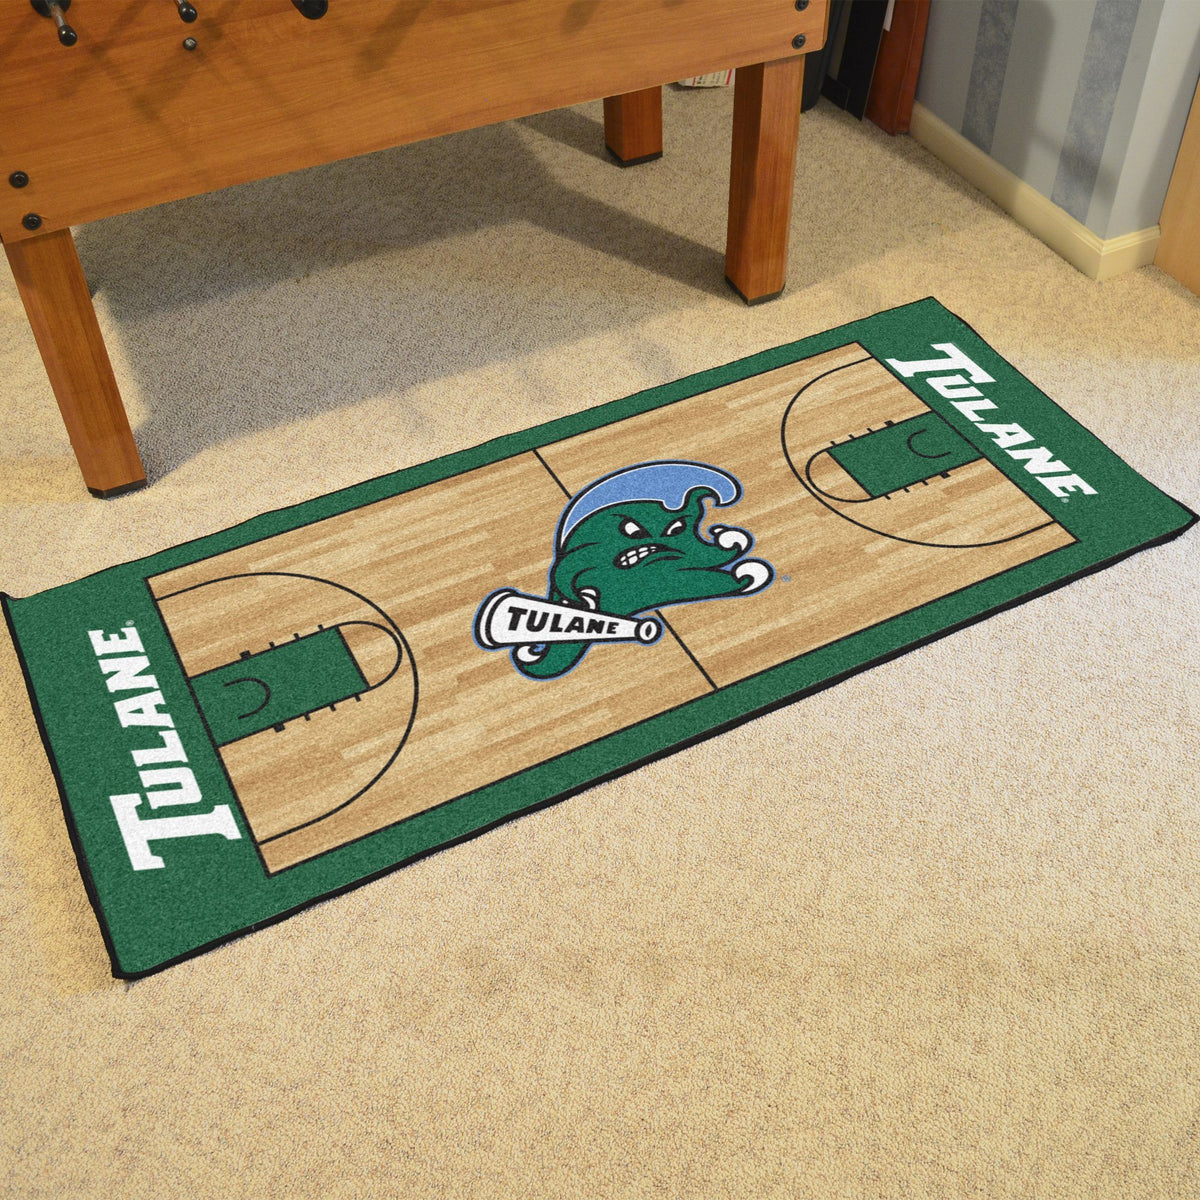 Collegiate - NCAA Basketball Runner Collegiate Mats, Rectangular Mats, NCAA Basketball Runner, Collegiate, Home Fan Mats Tulane